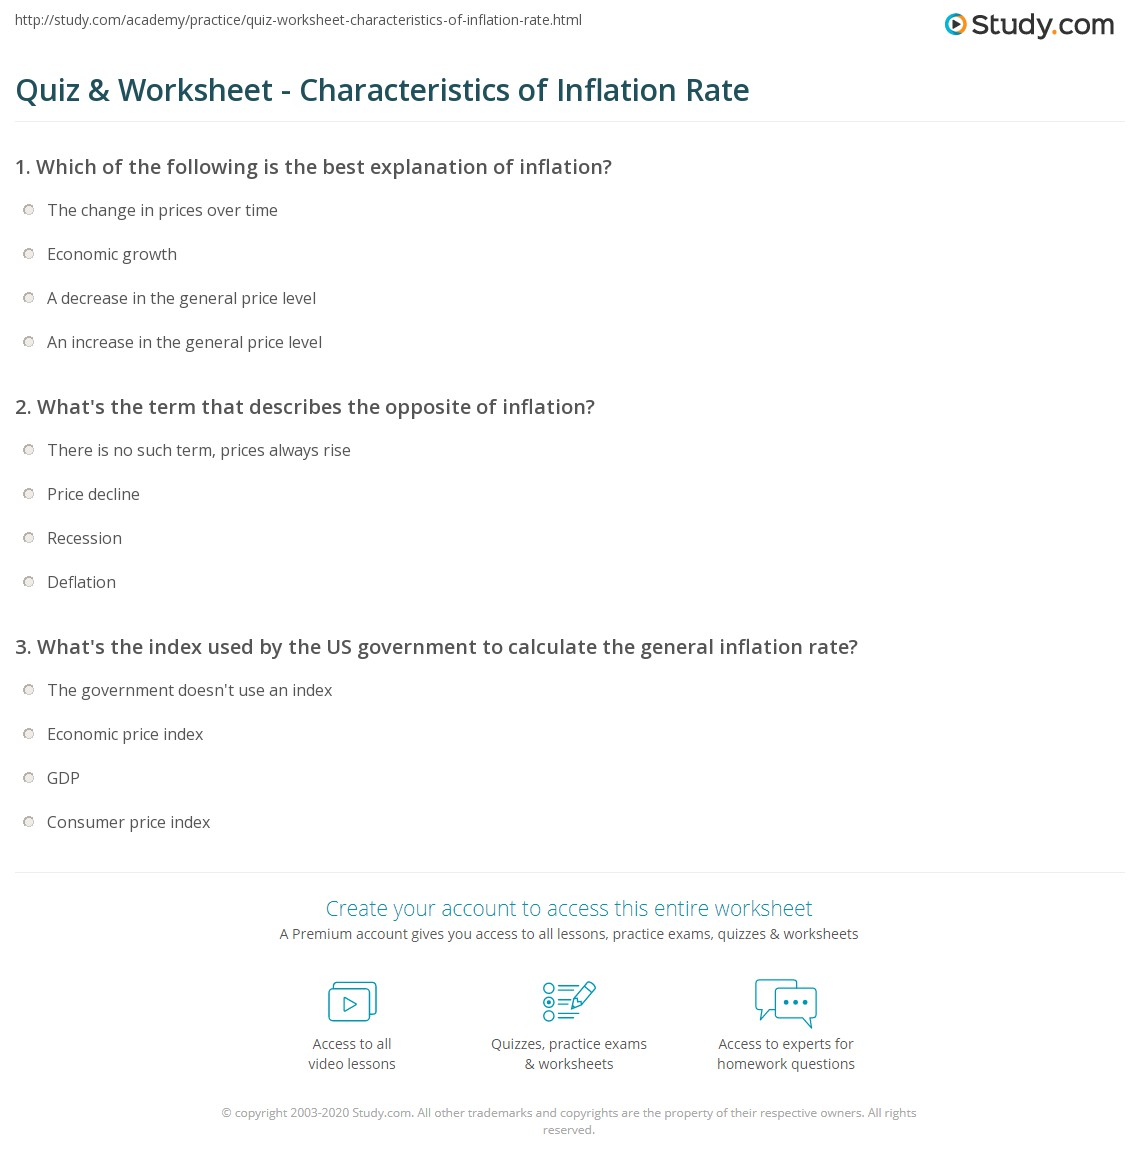 Quiz & Worksheet - Characteristics of Inflation Rate | Study.com